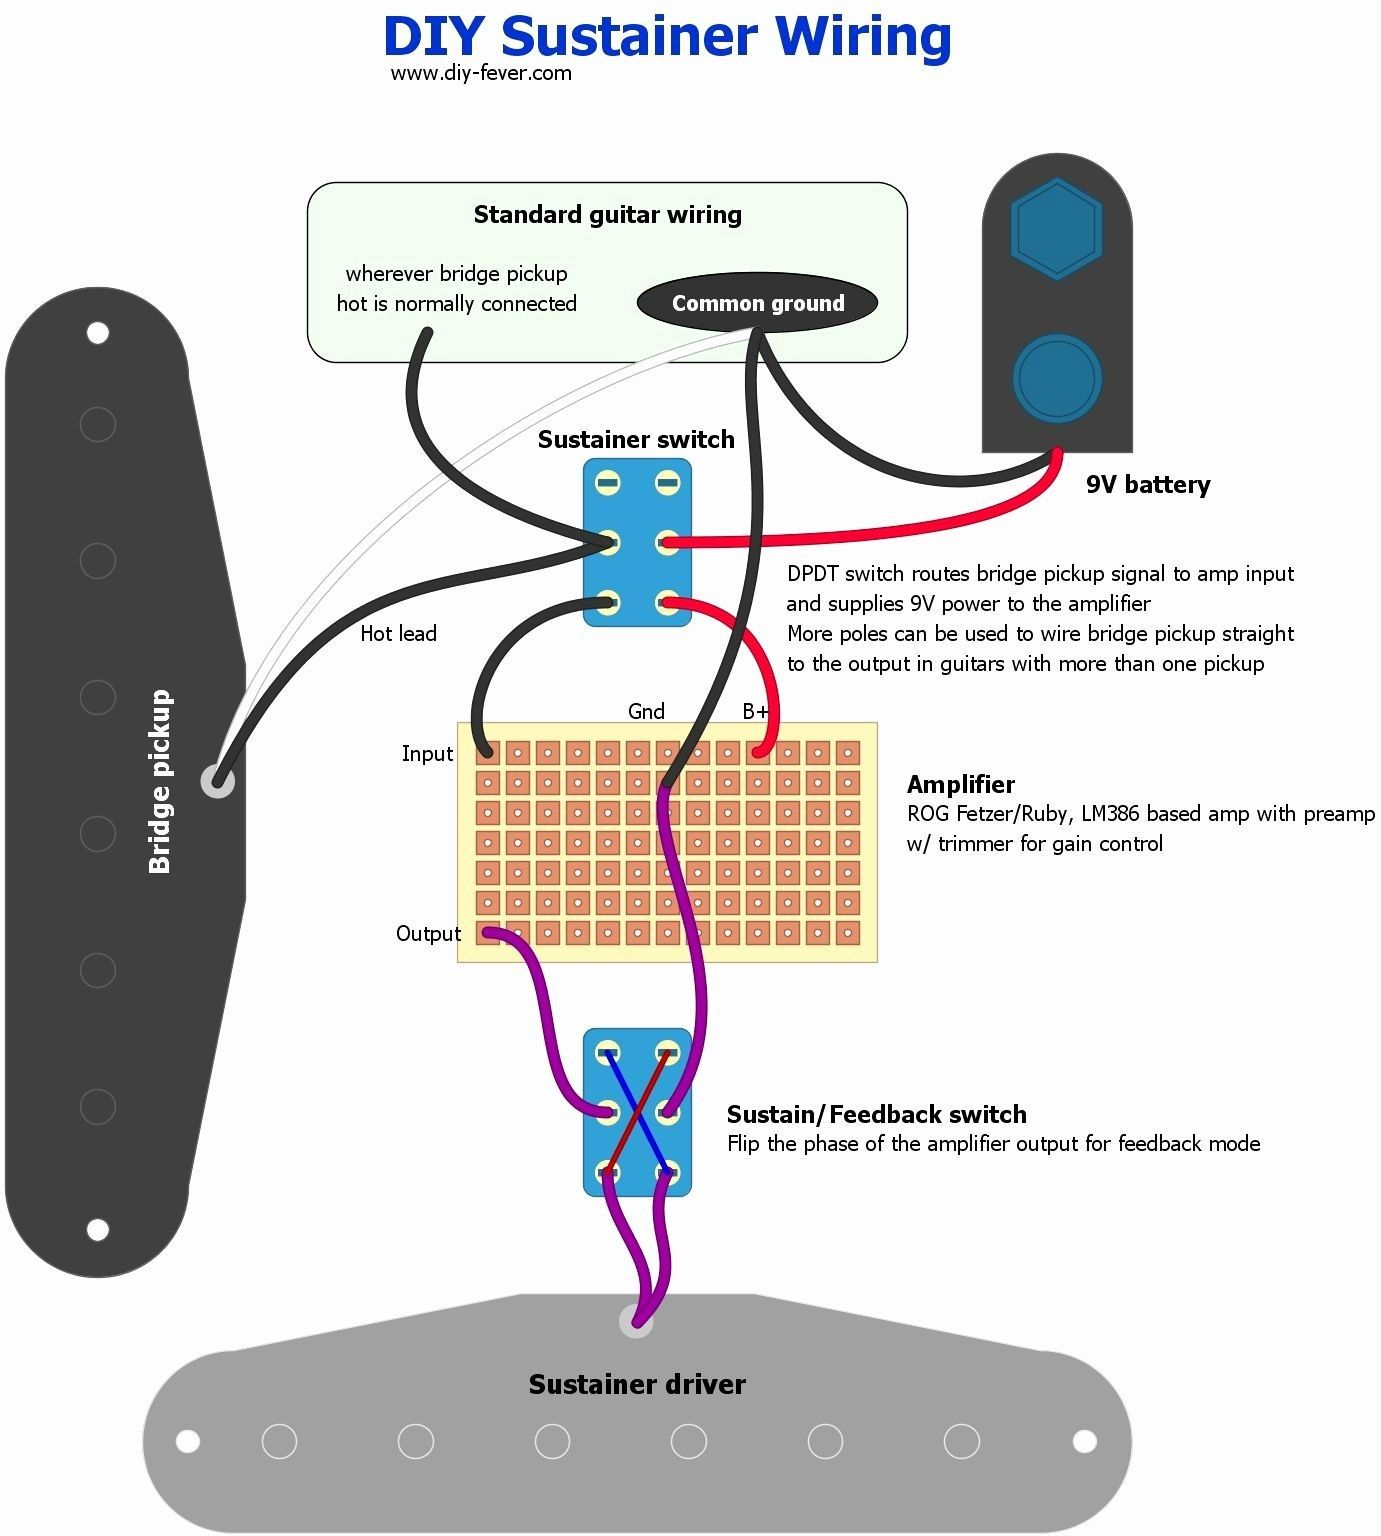 Unique Wiring Diagram for One Pickup Guitar #diagram ... on